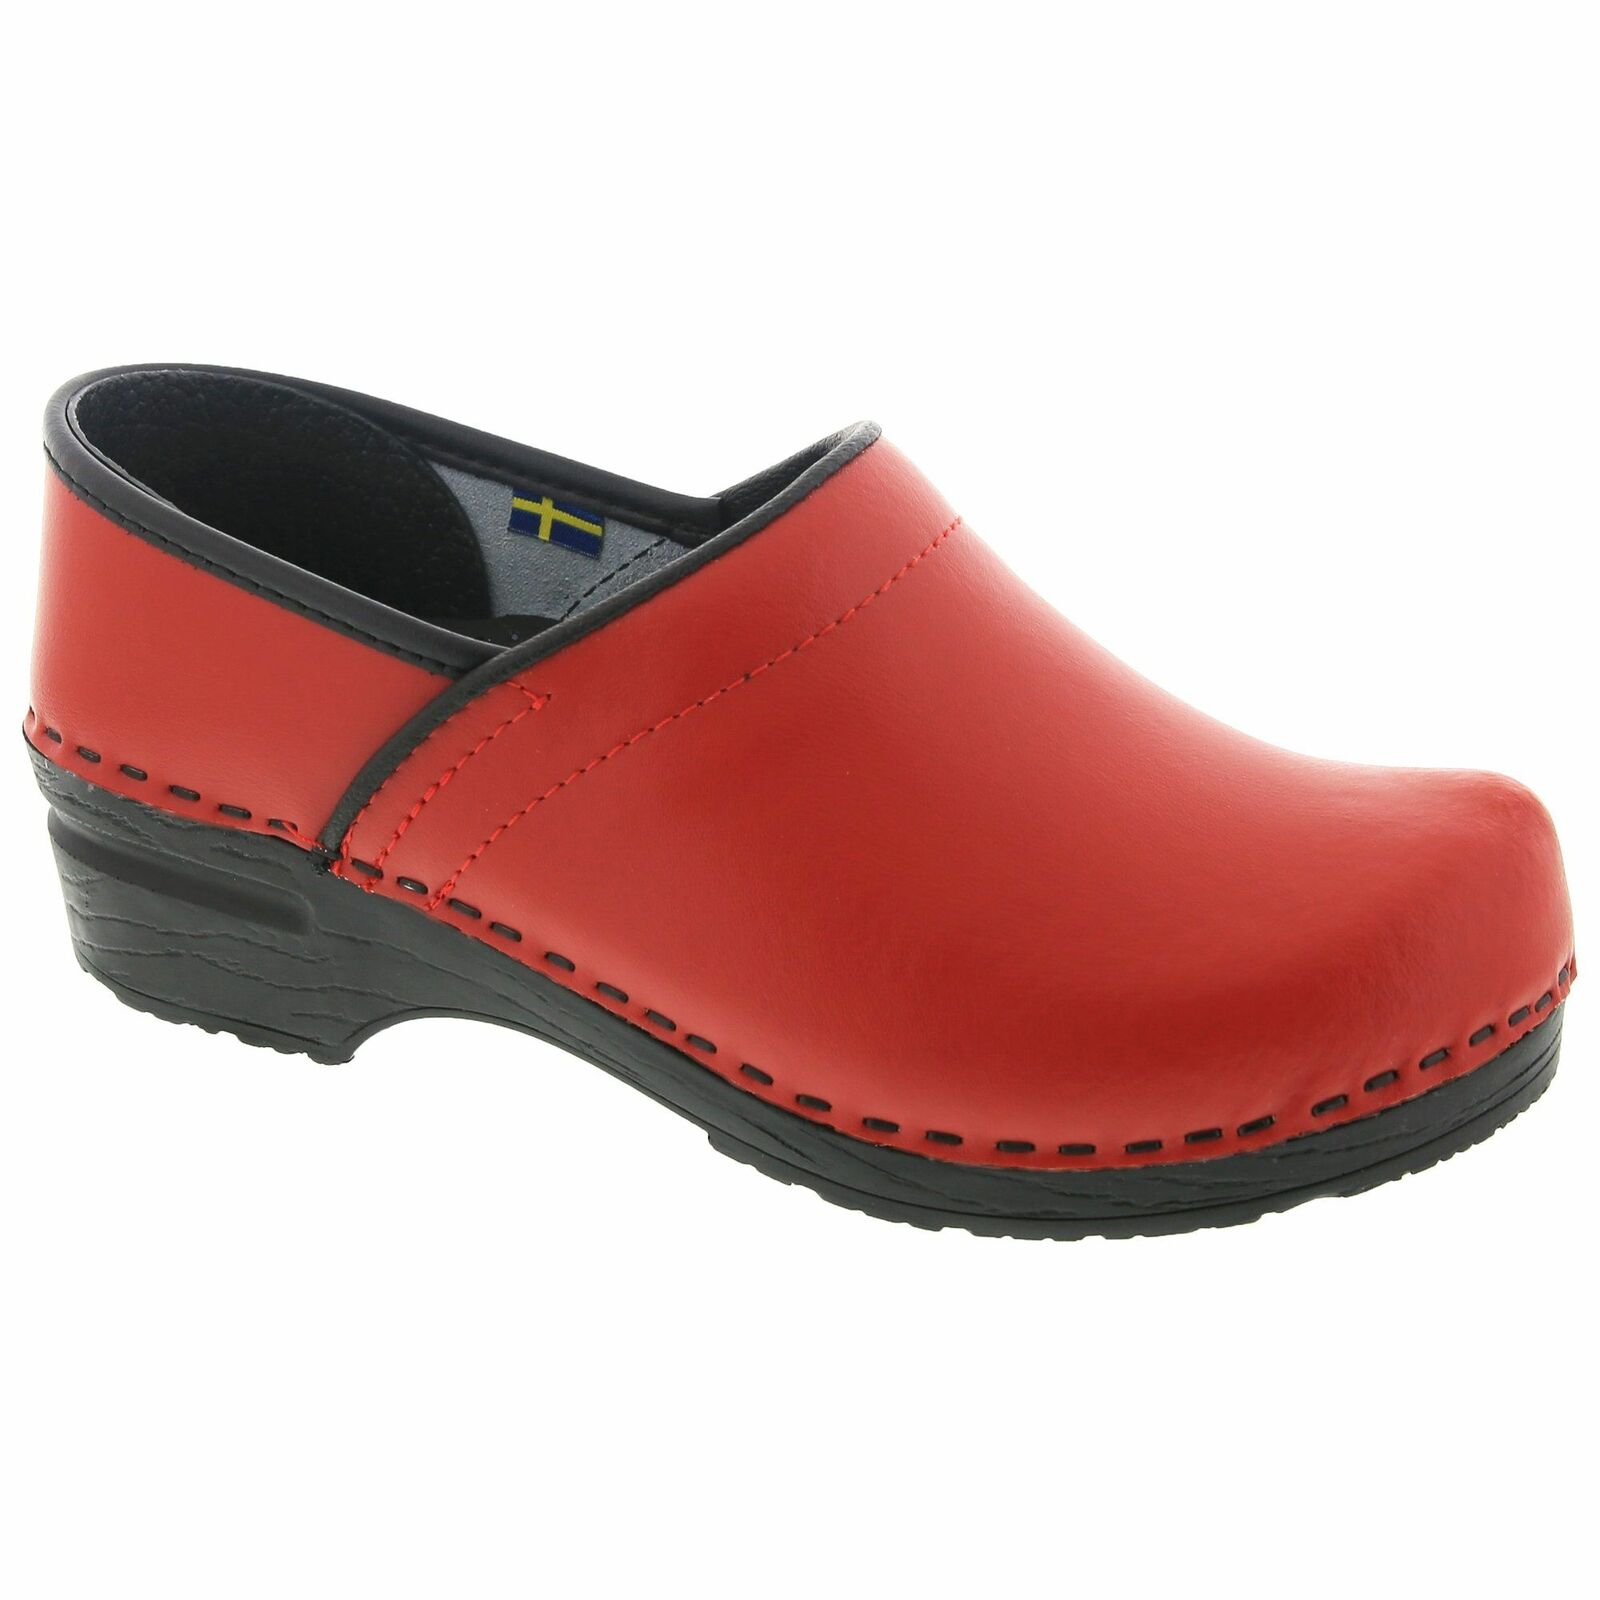 BJORK PRO ELLA Leather Clogs